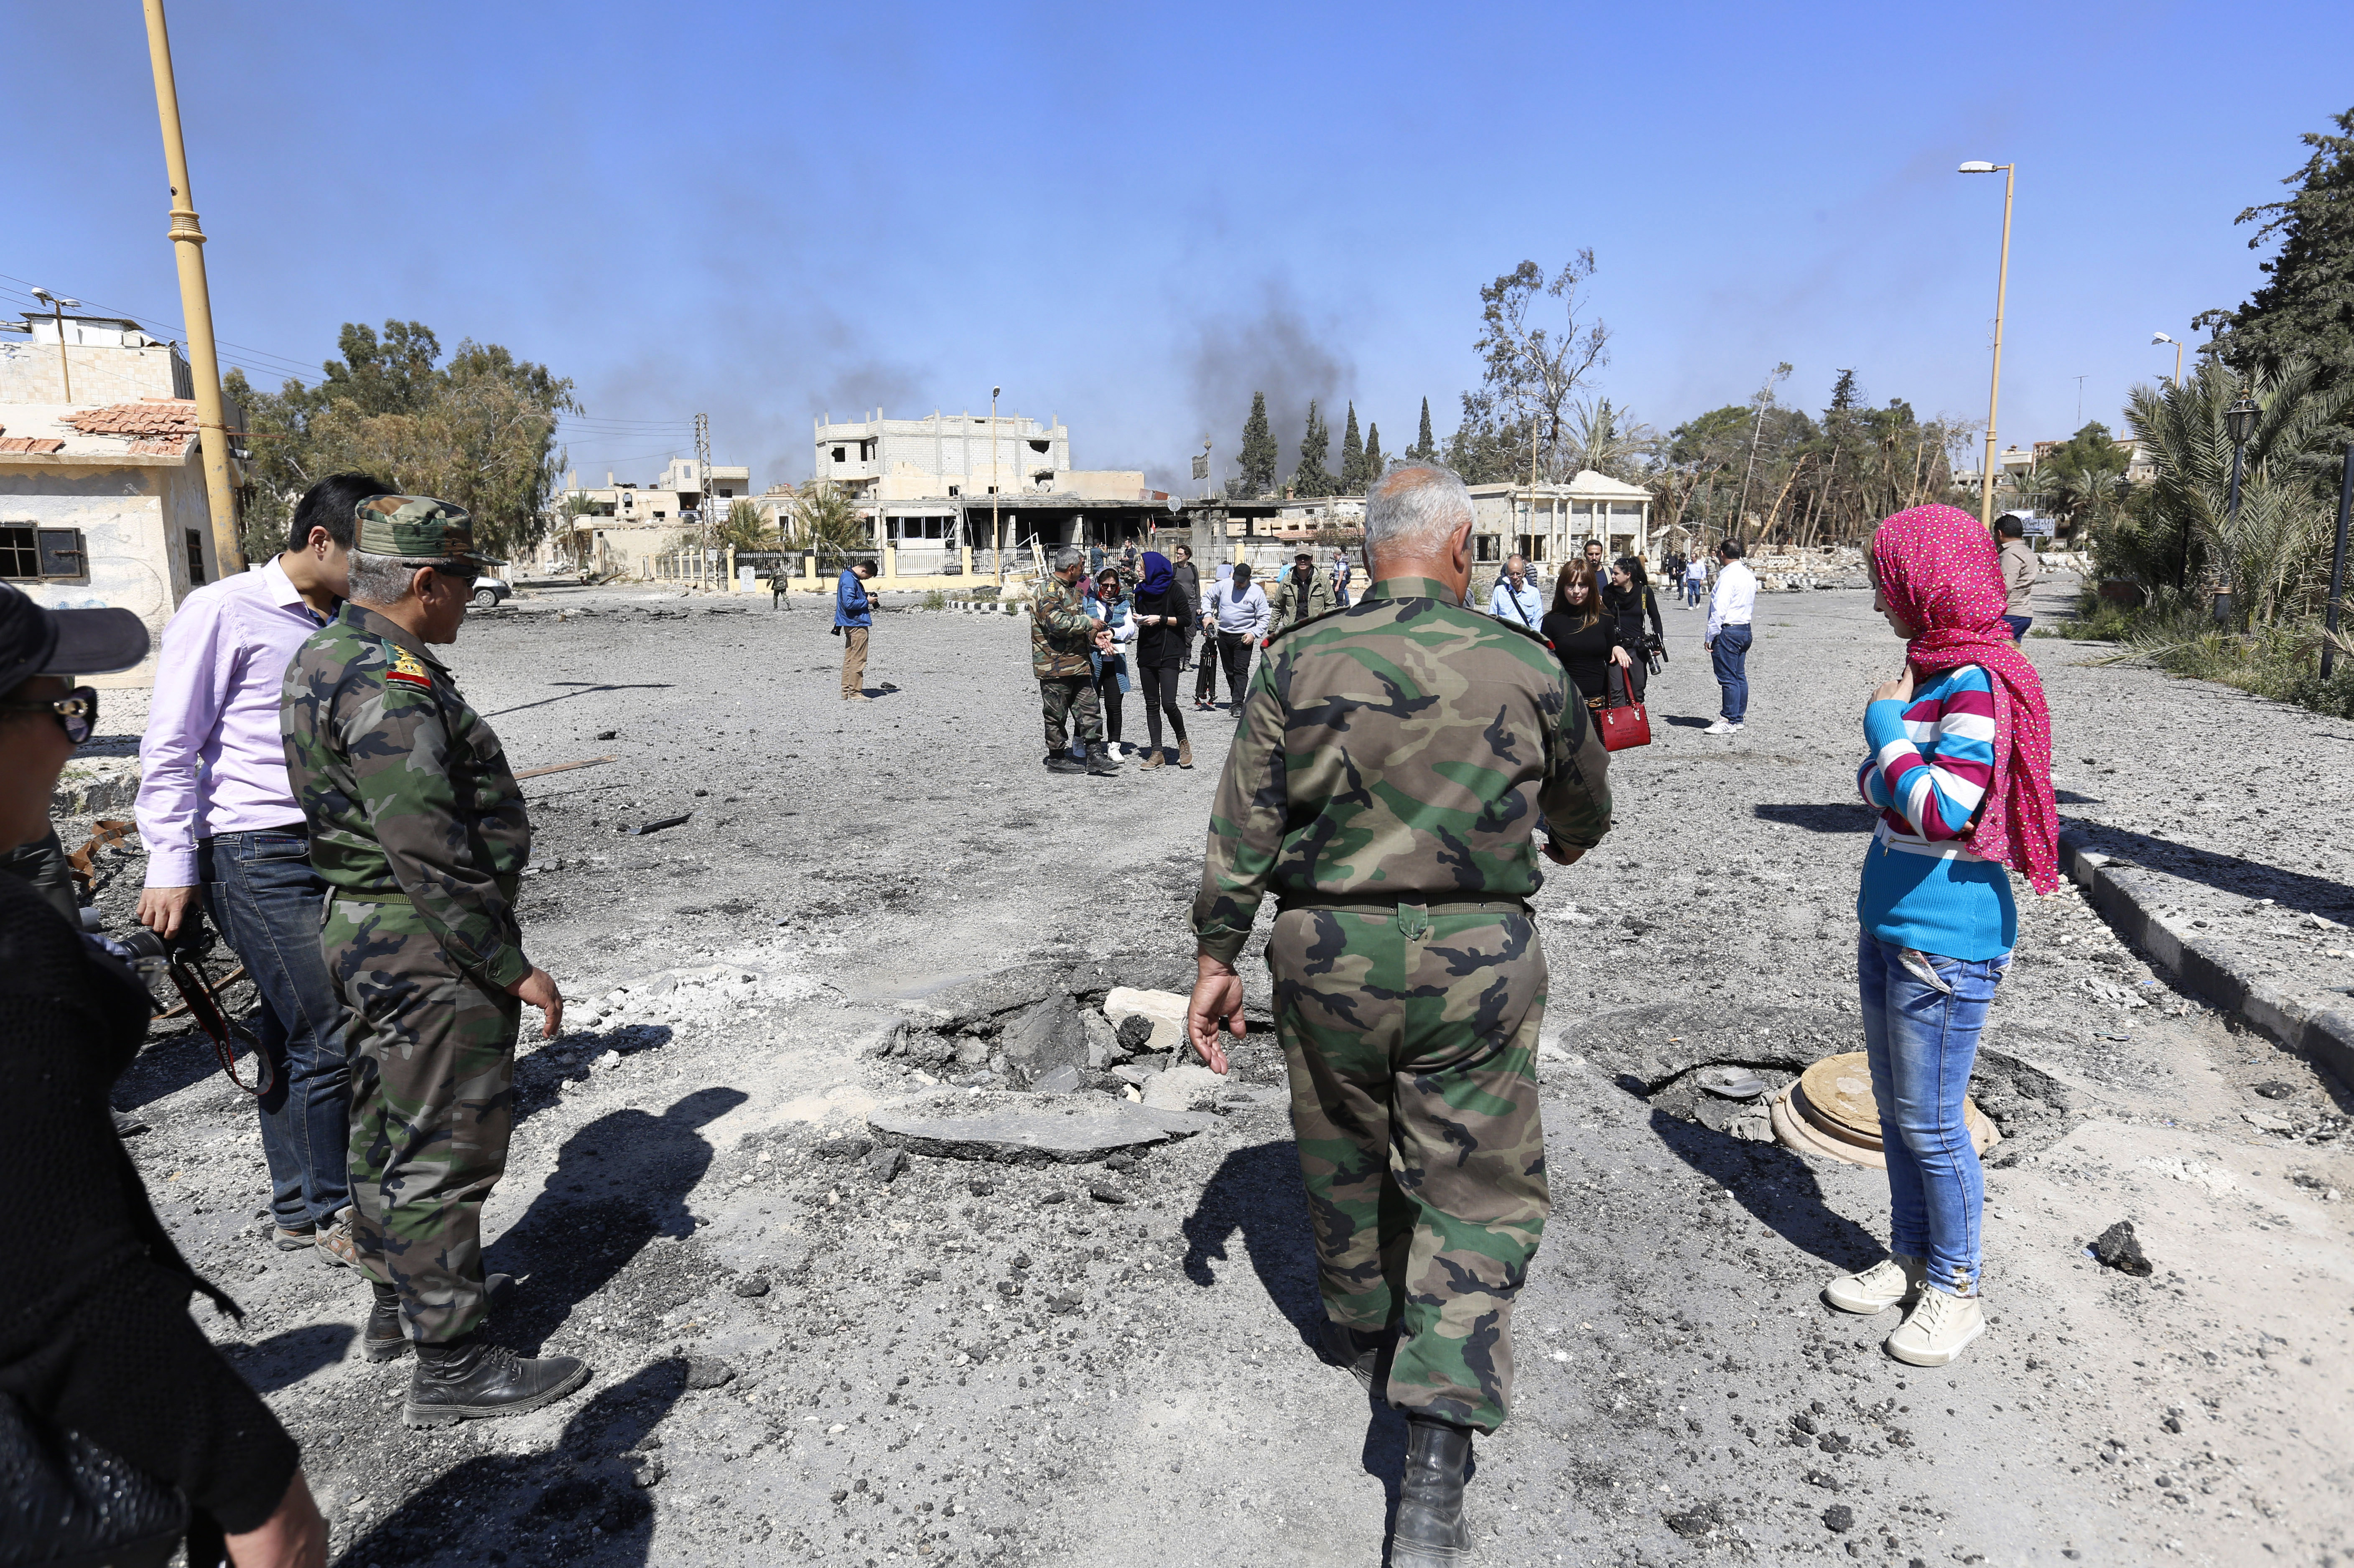 Syrian Forces Seize Town of Qaryatain From Islamic State | Voice of America - English